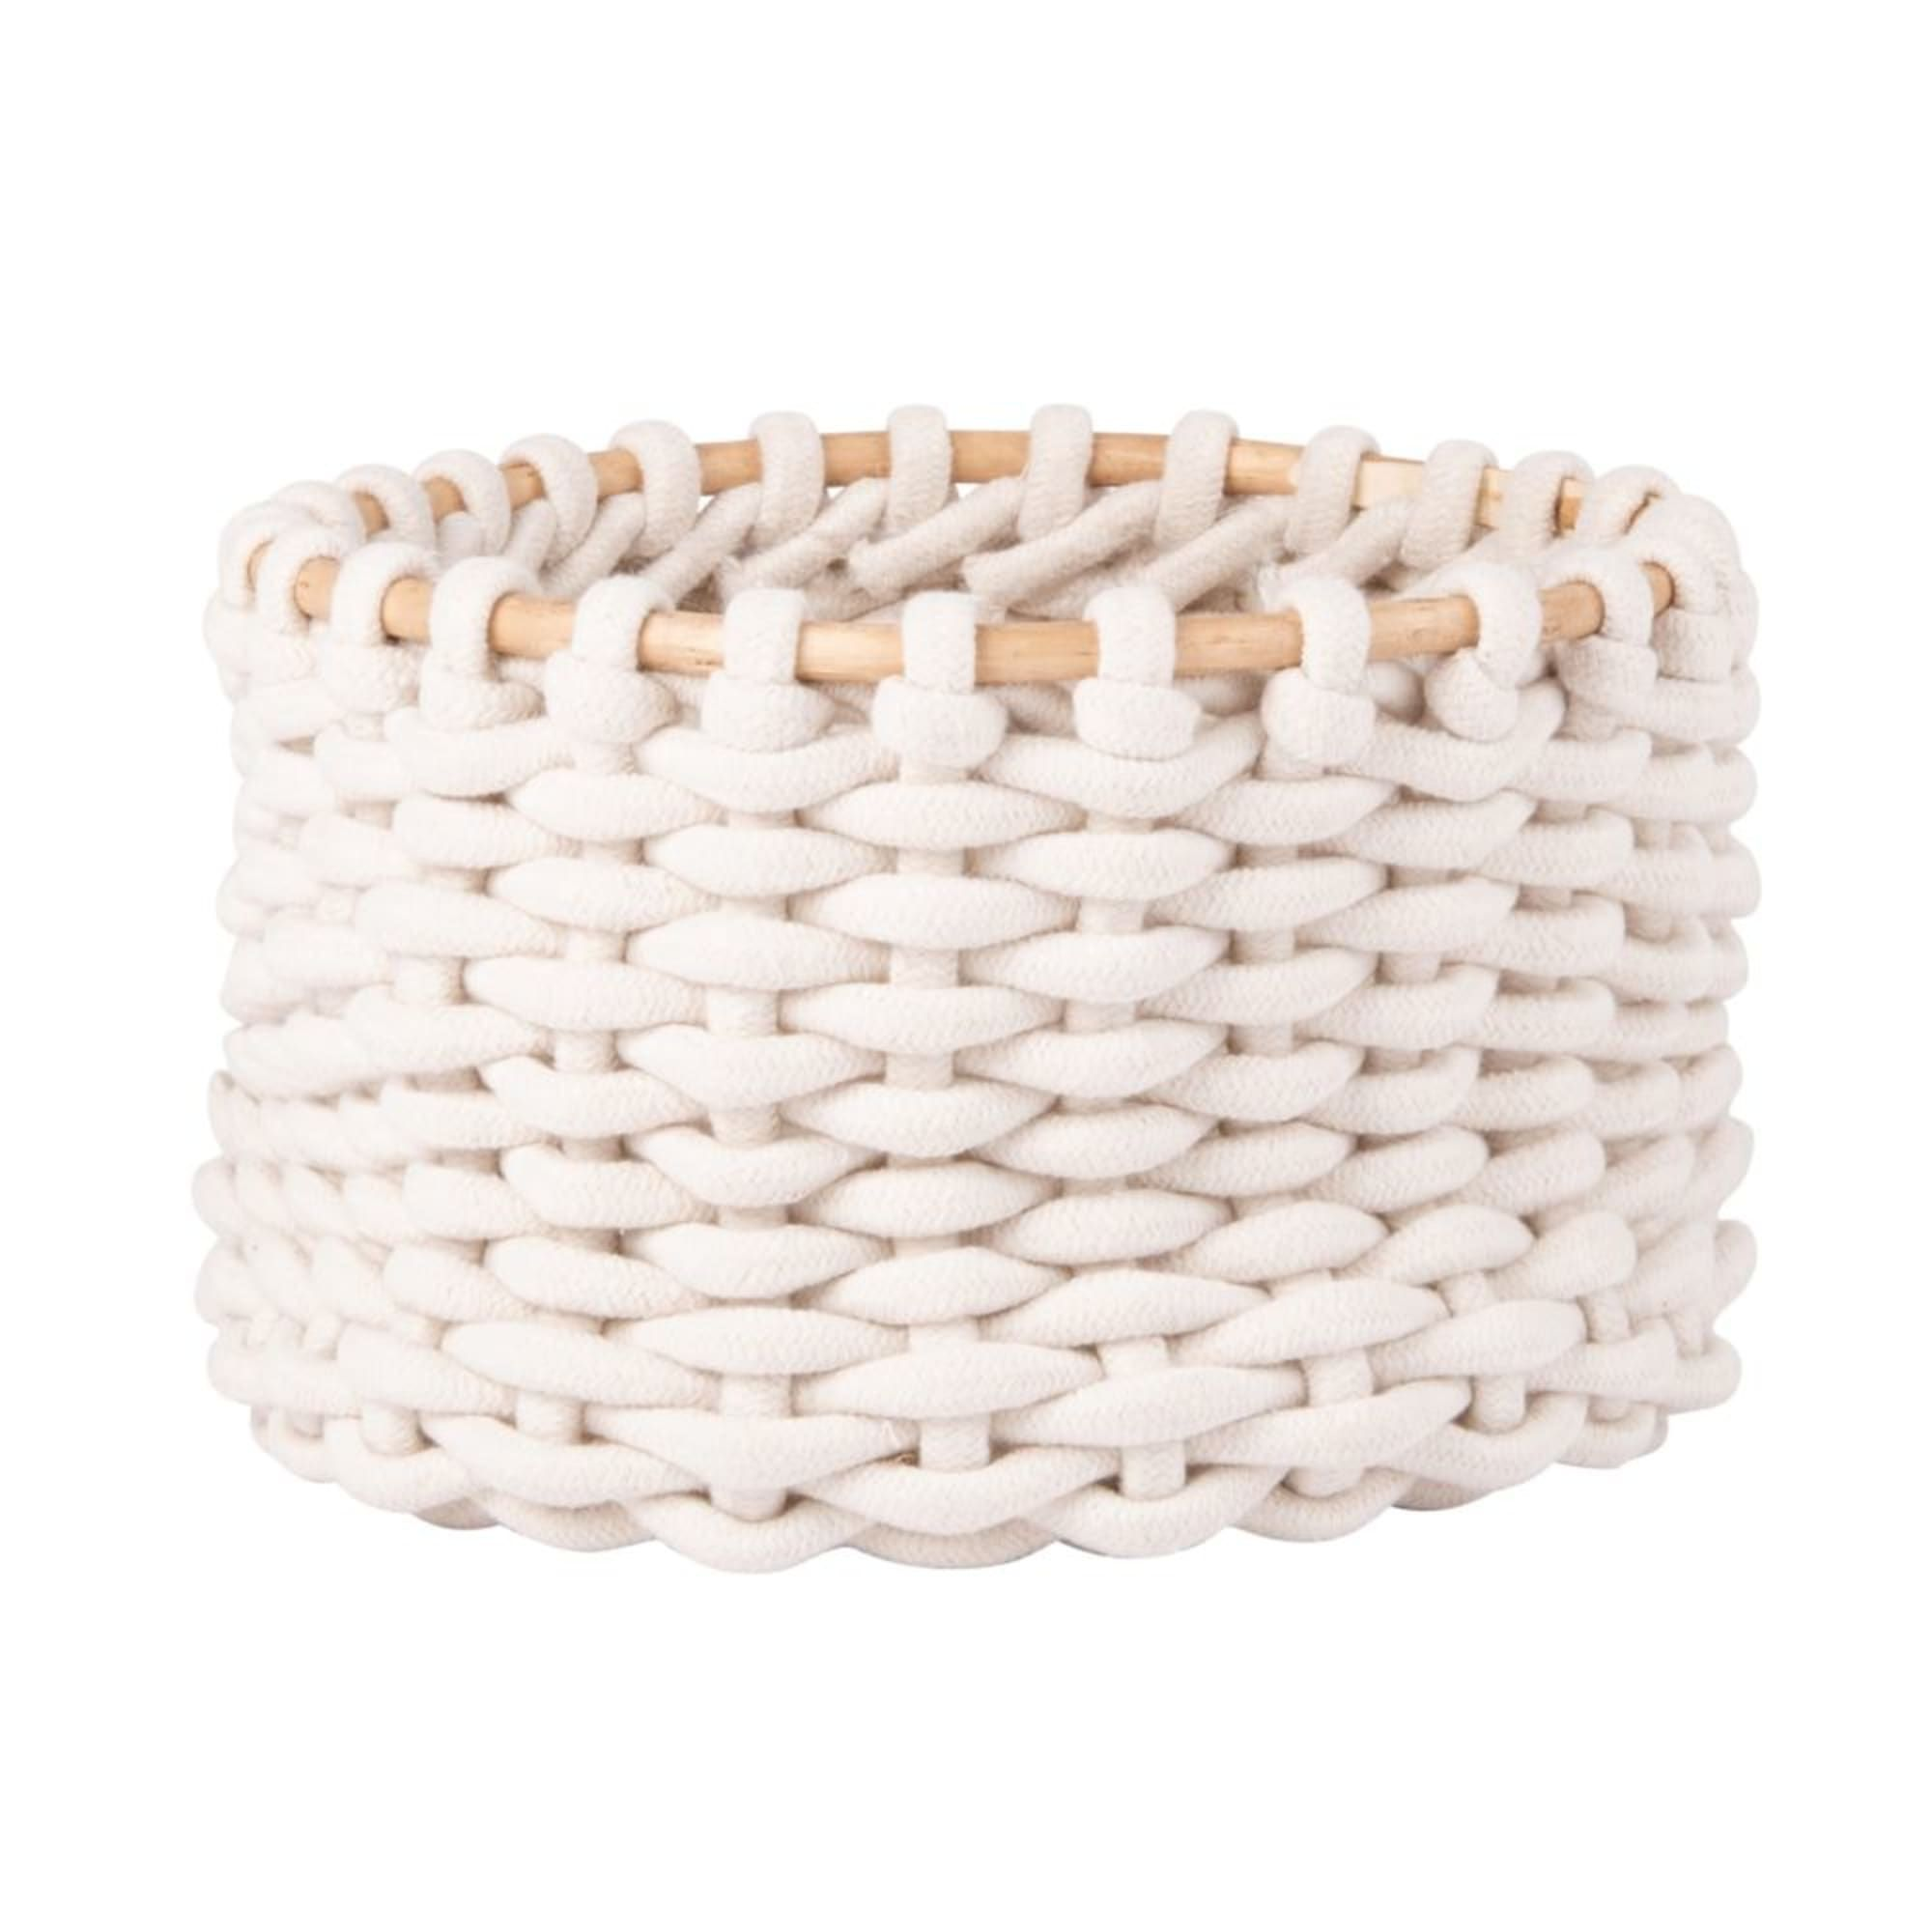 59a344405684ca9abf41eb4a4b6596a5 - Better Homes And Gardens Chunky Rope Basket